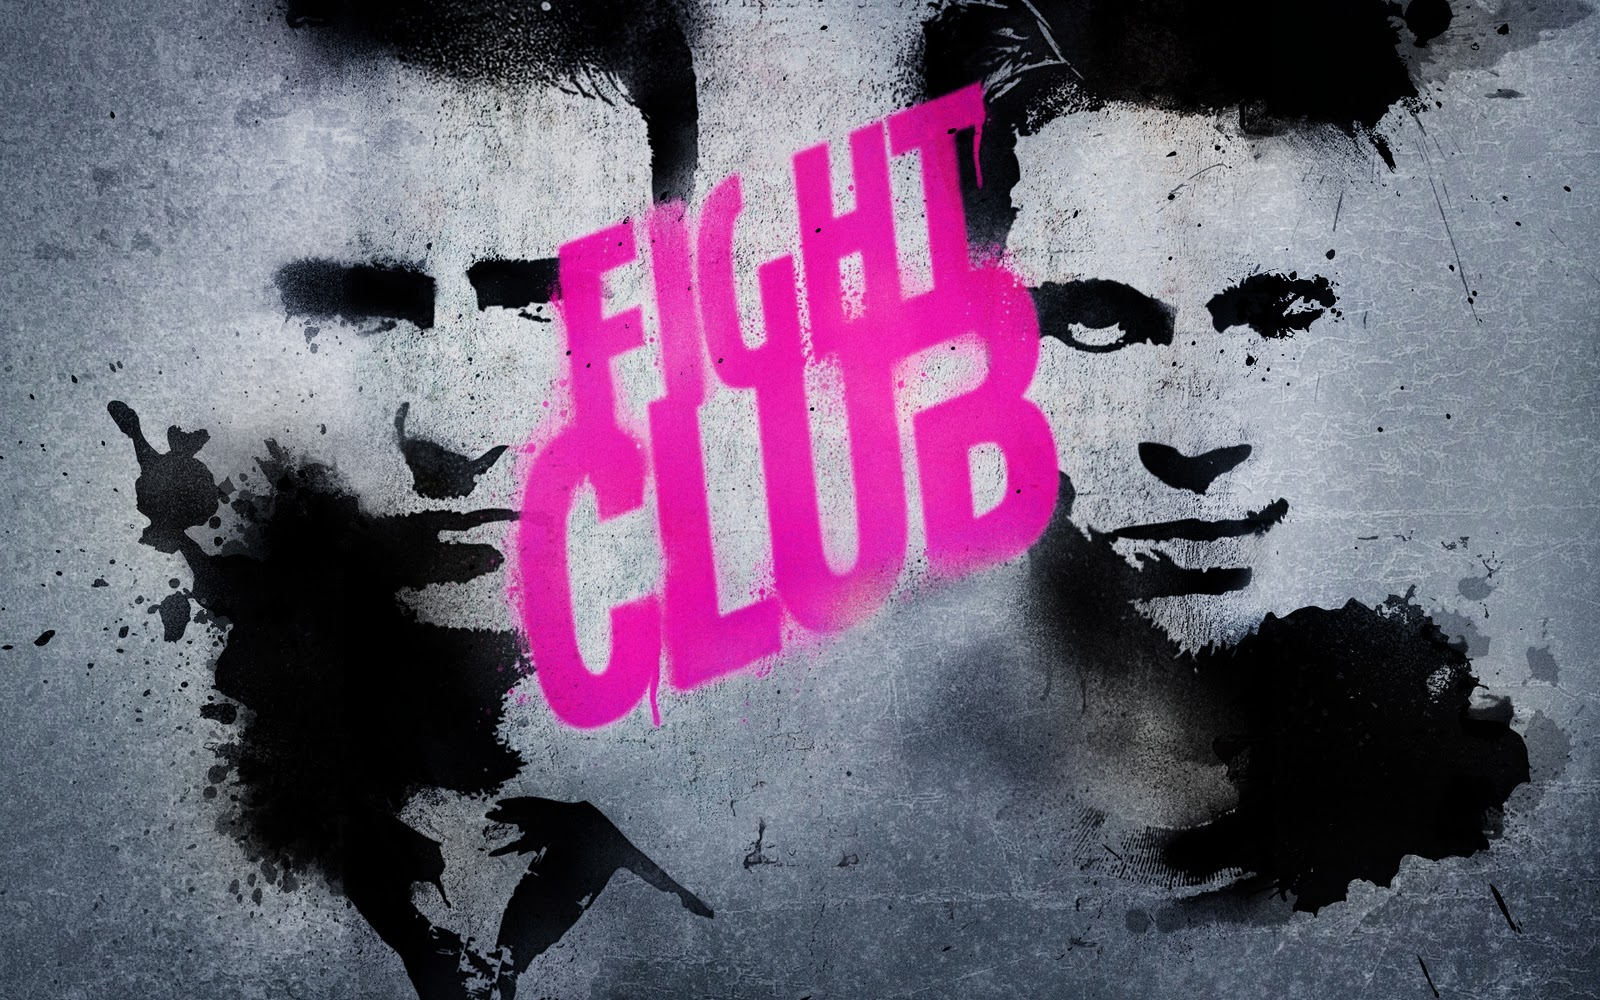 fight_club.jpg